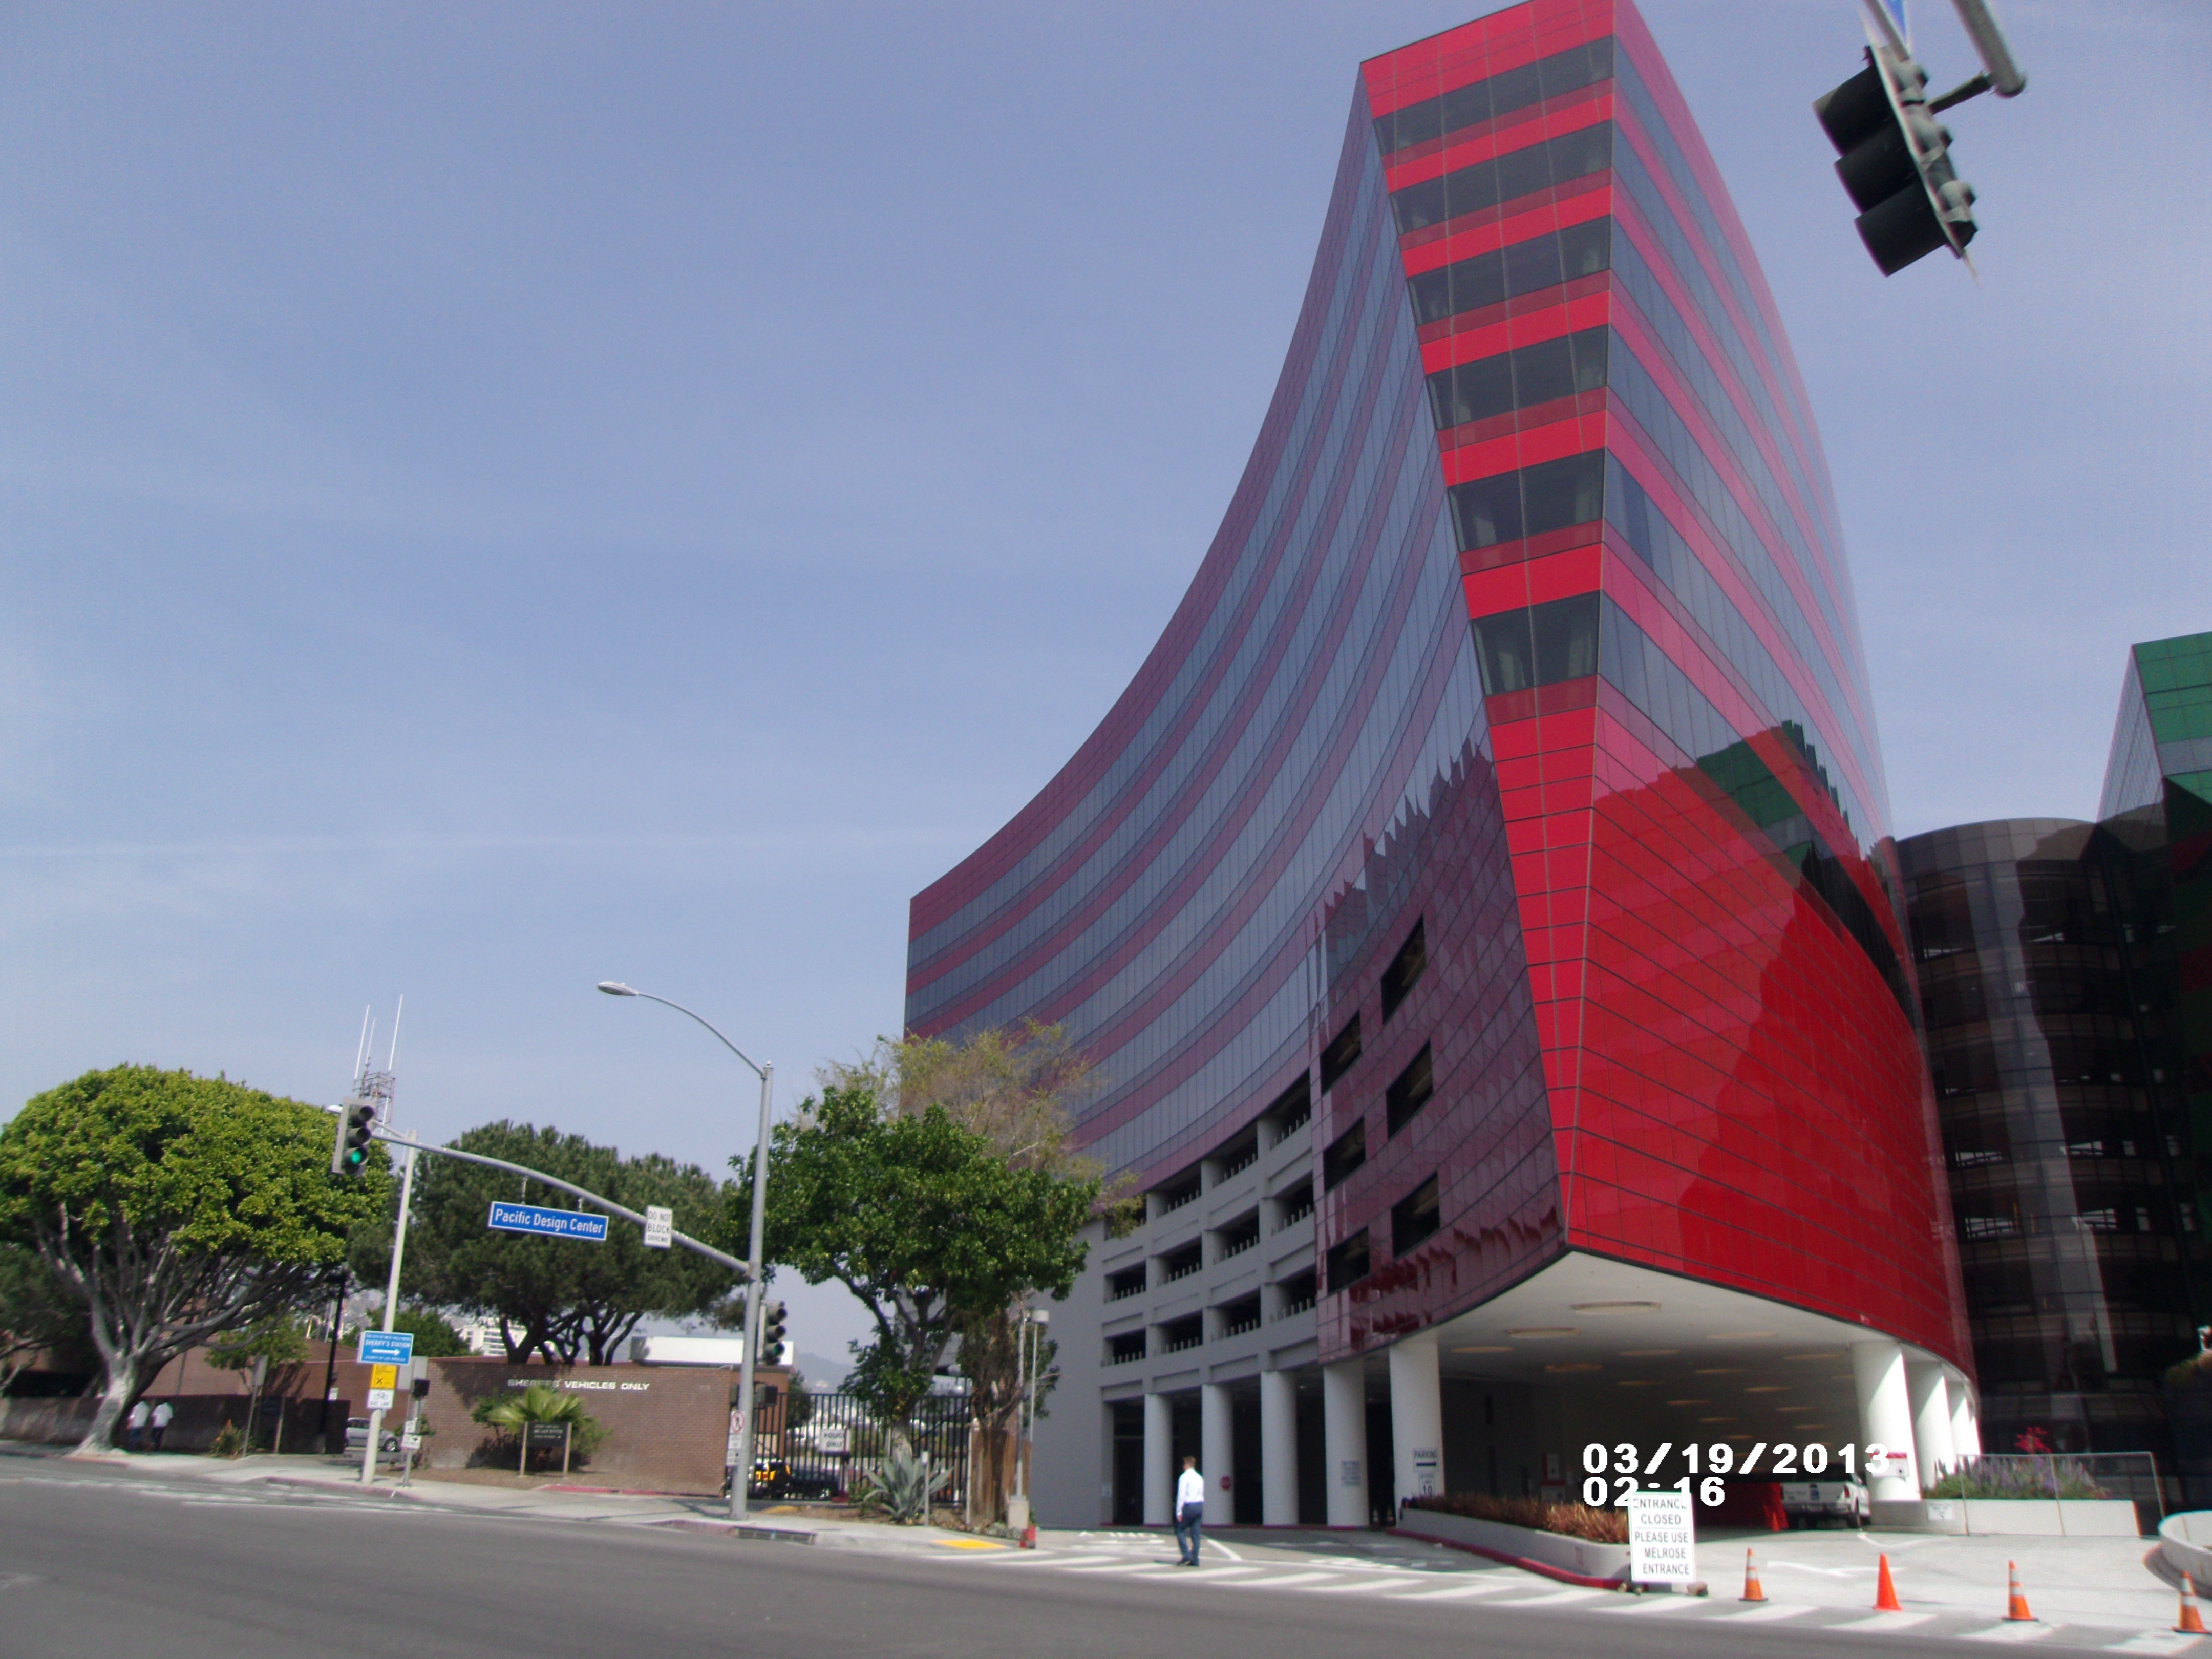 """d123a087f1ea The new Address Number of this Red Building will be """"750"""" San Vicente Blvd.  Why this specific number?"""